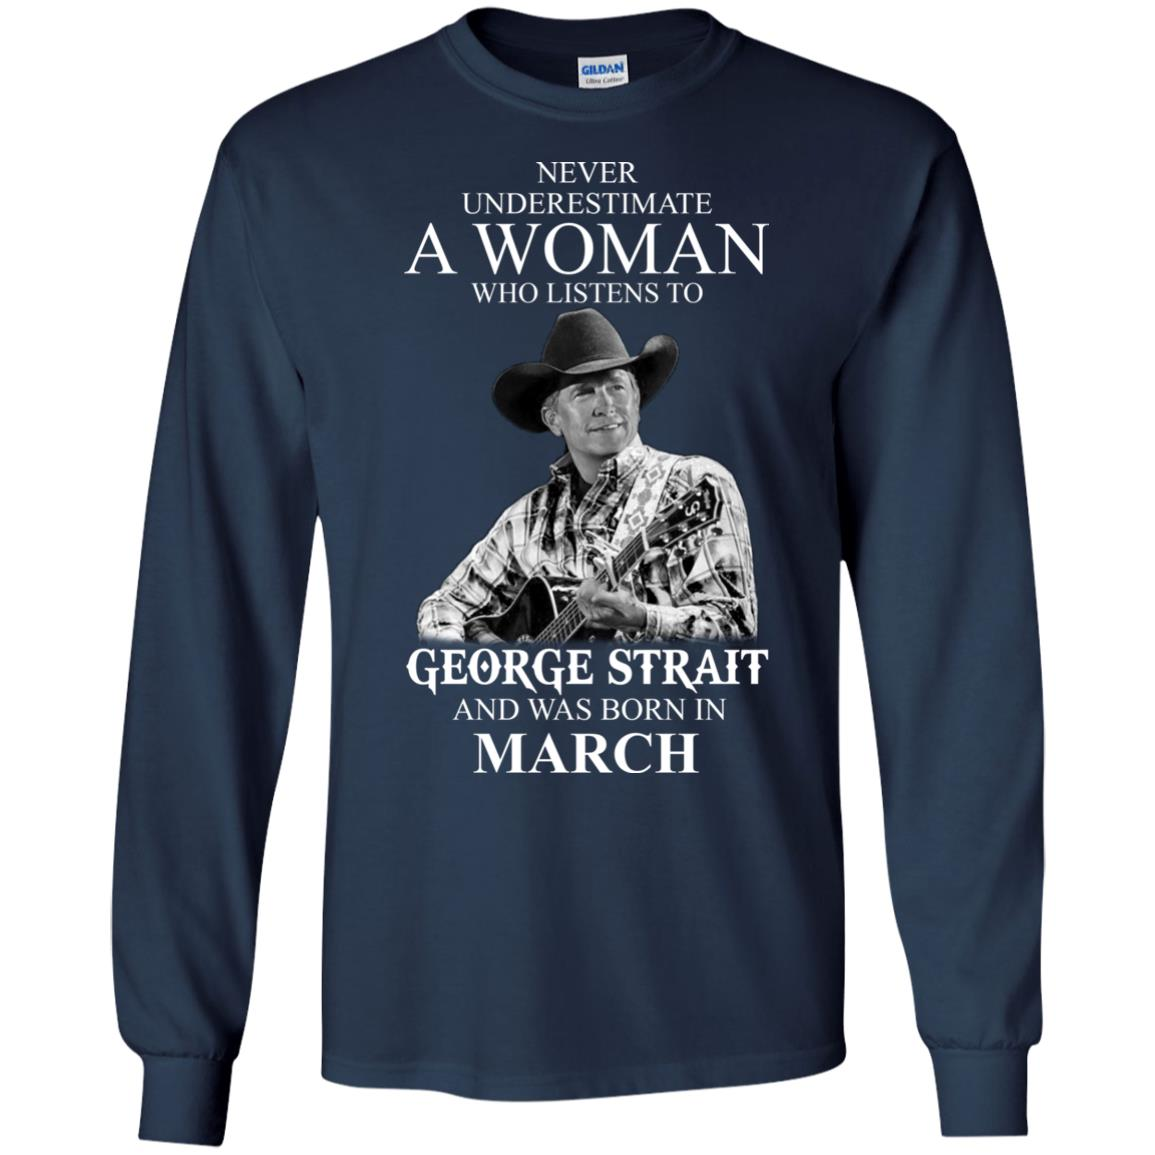 image 437 - Never Underestimate A Woman Who Listens To George Strait And Was Born In March shirt